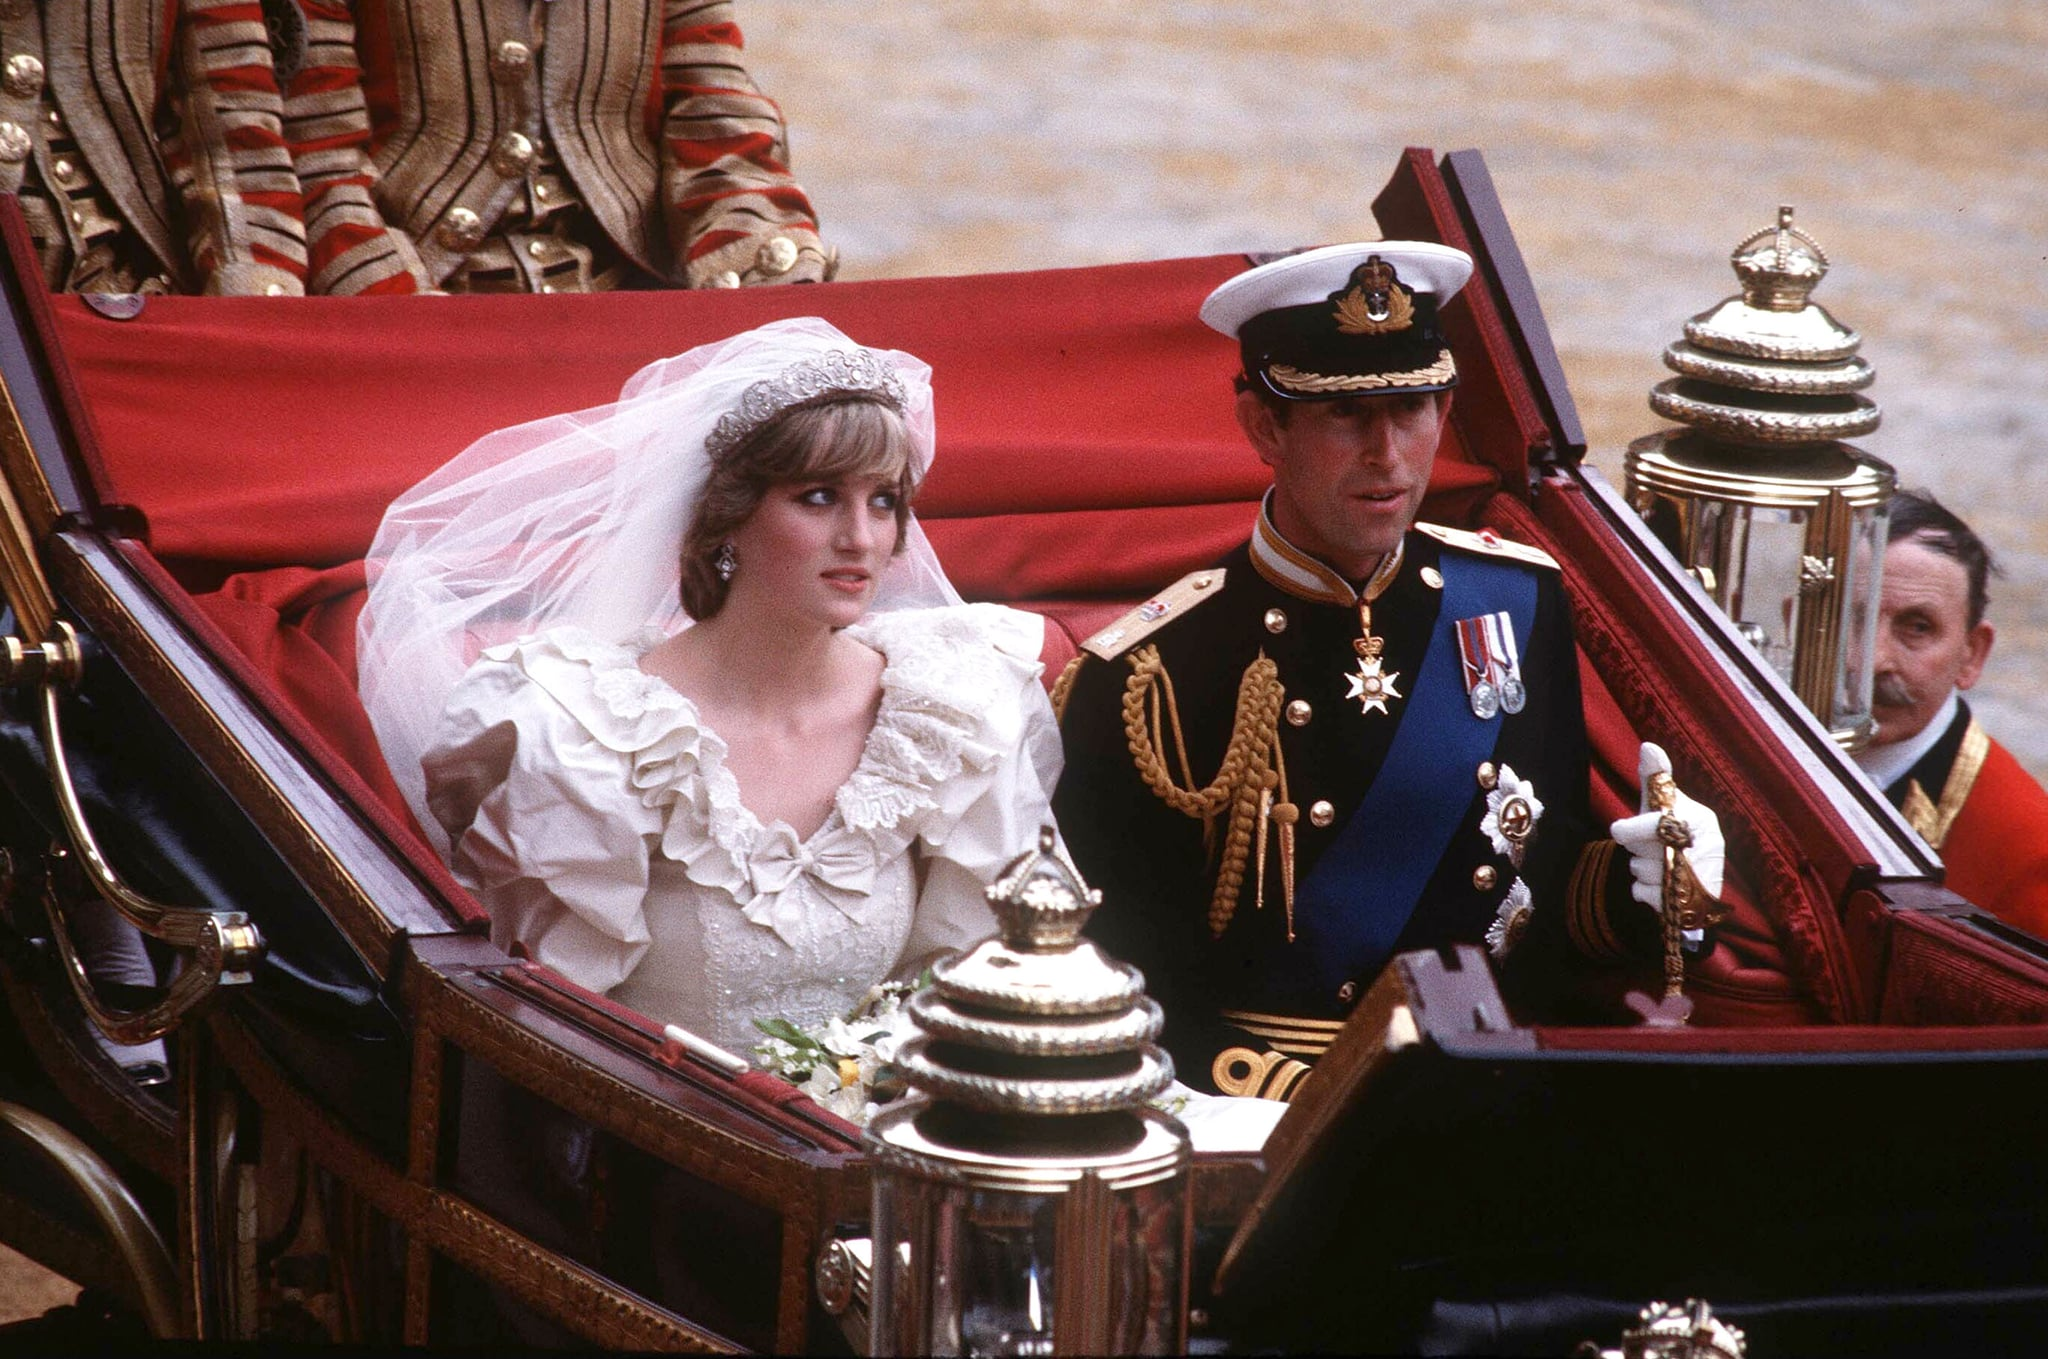 Charles And Diana Wedding.Why Was Camilla At Charles And Diana S Wedding Popsugar Celebrity